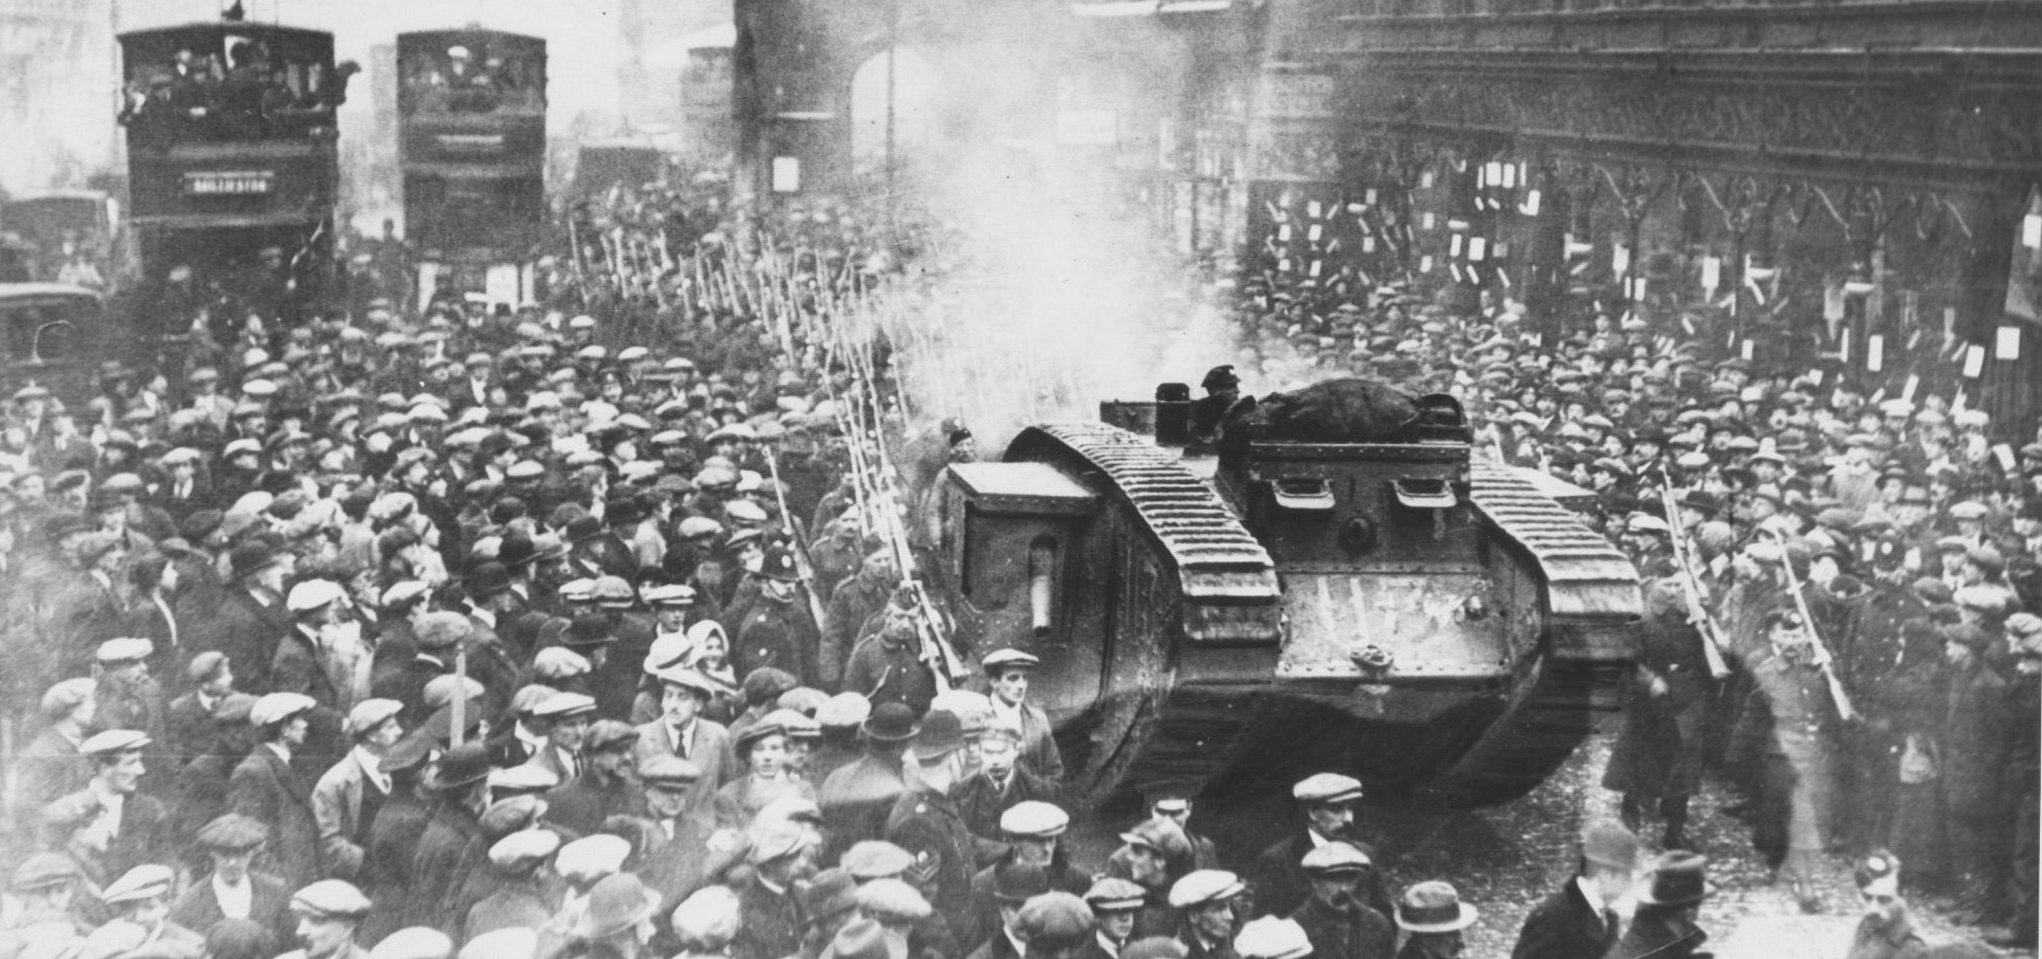 Research, confirmed by The Herald, suggests the photograph, which depicts a tank surrounded by soldiers and of Glaswegians on the Trongate, was actually taken in mid-January 1918